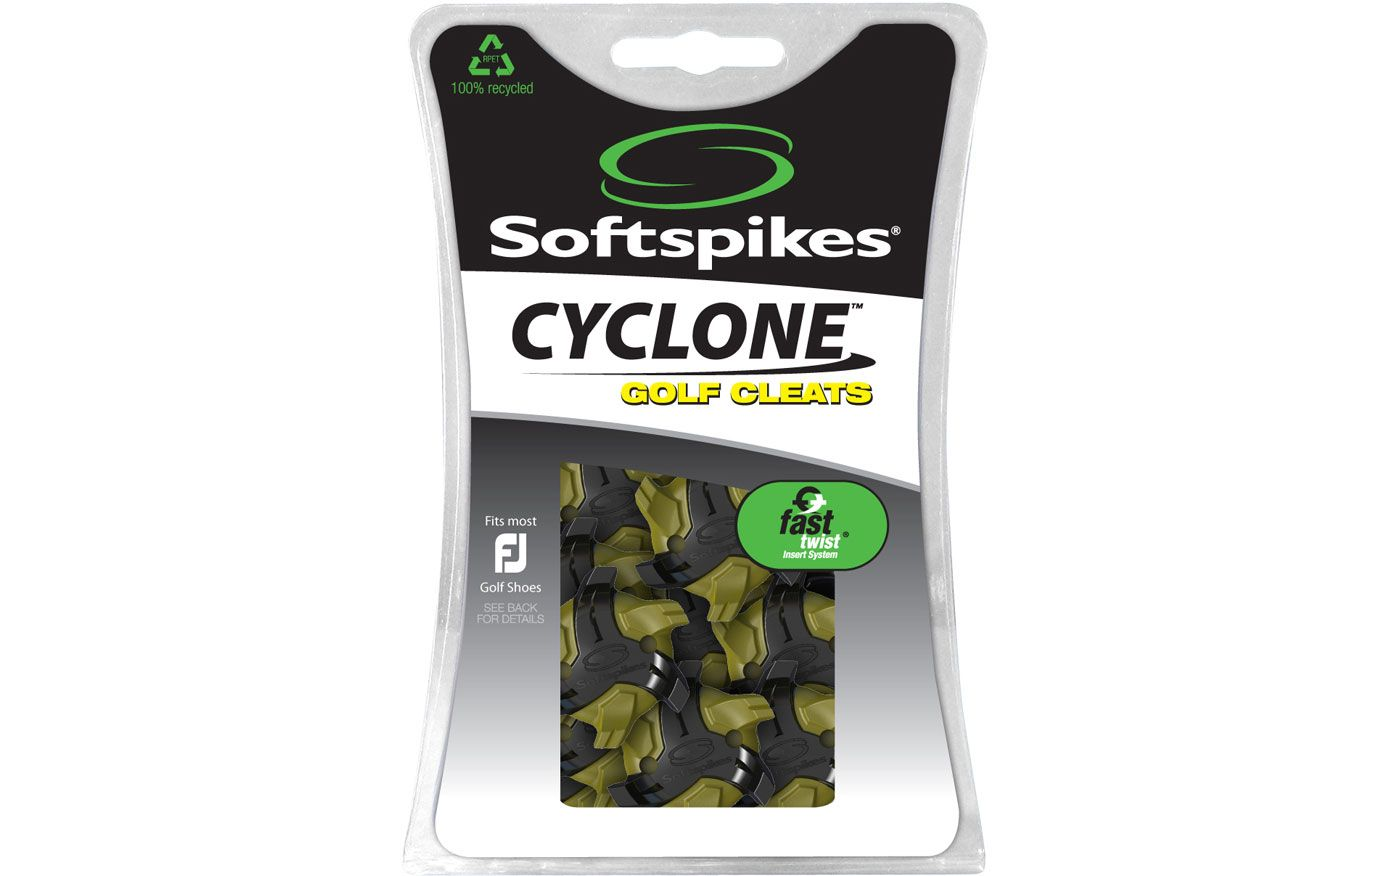 Softspikes Cyclone Fast Twist Golf Spikes - 18 Pack